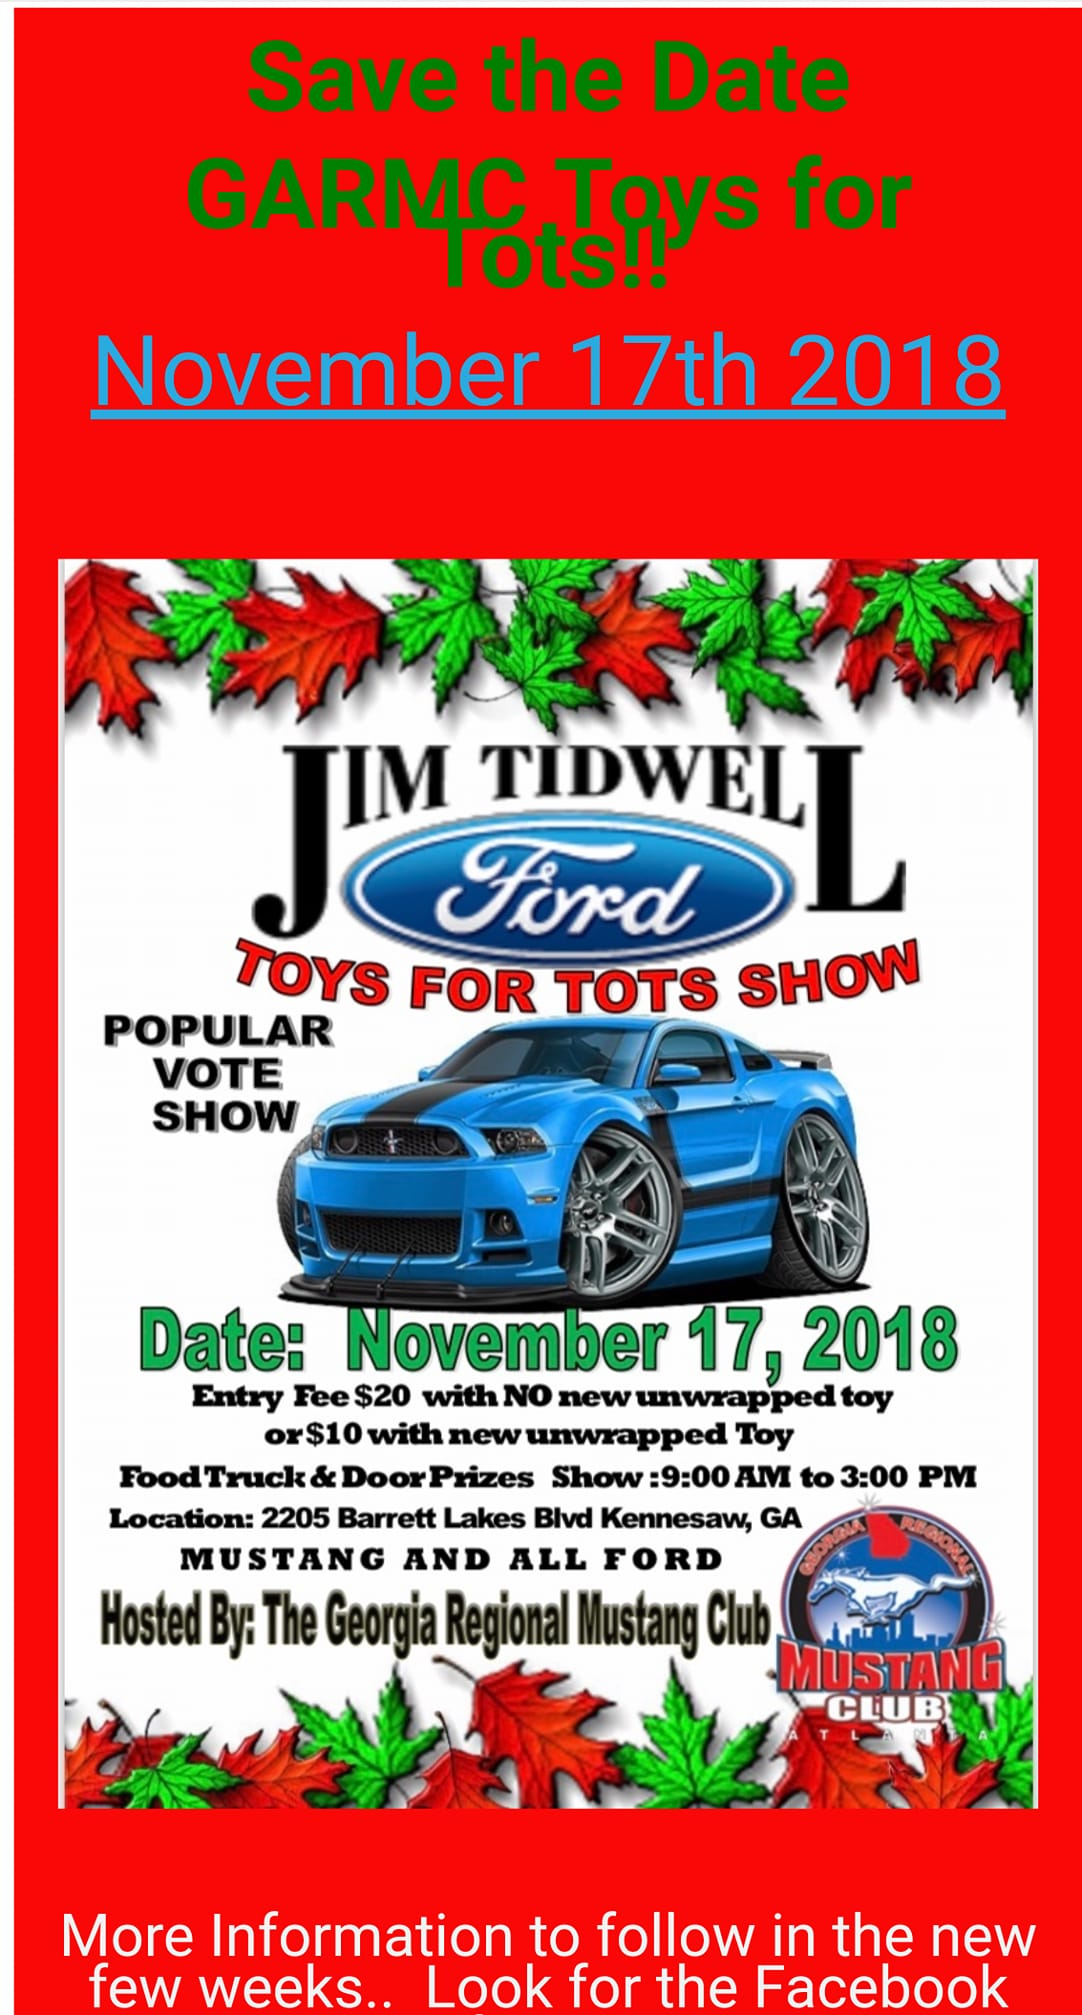 Jim Tidwell Ford Toys For Tots Show November Georgia - Toys for tots car show 2018